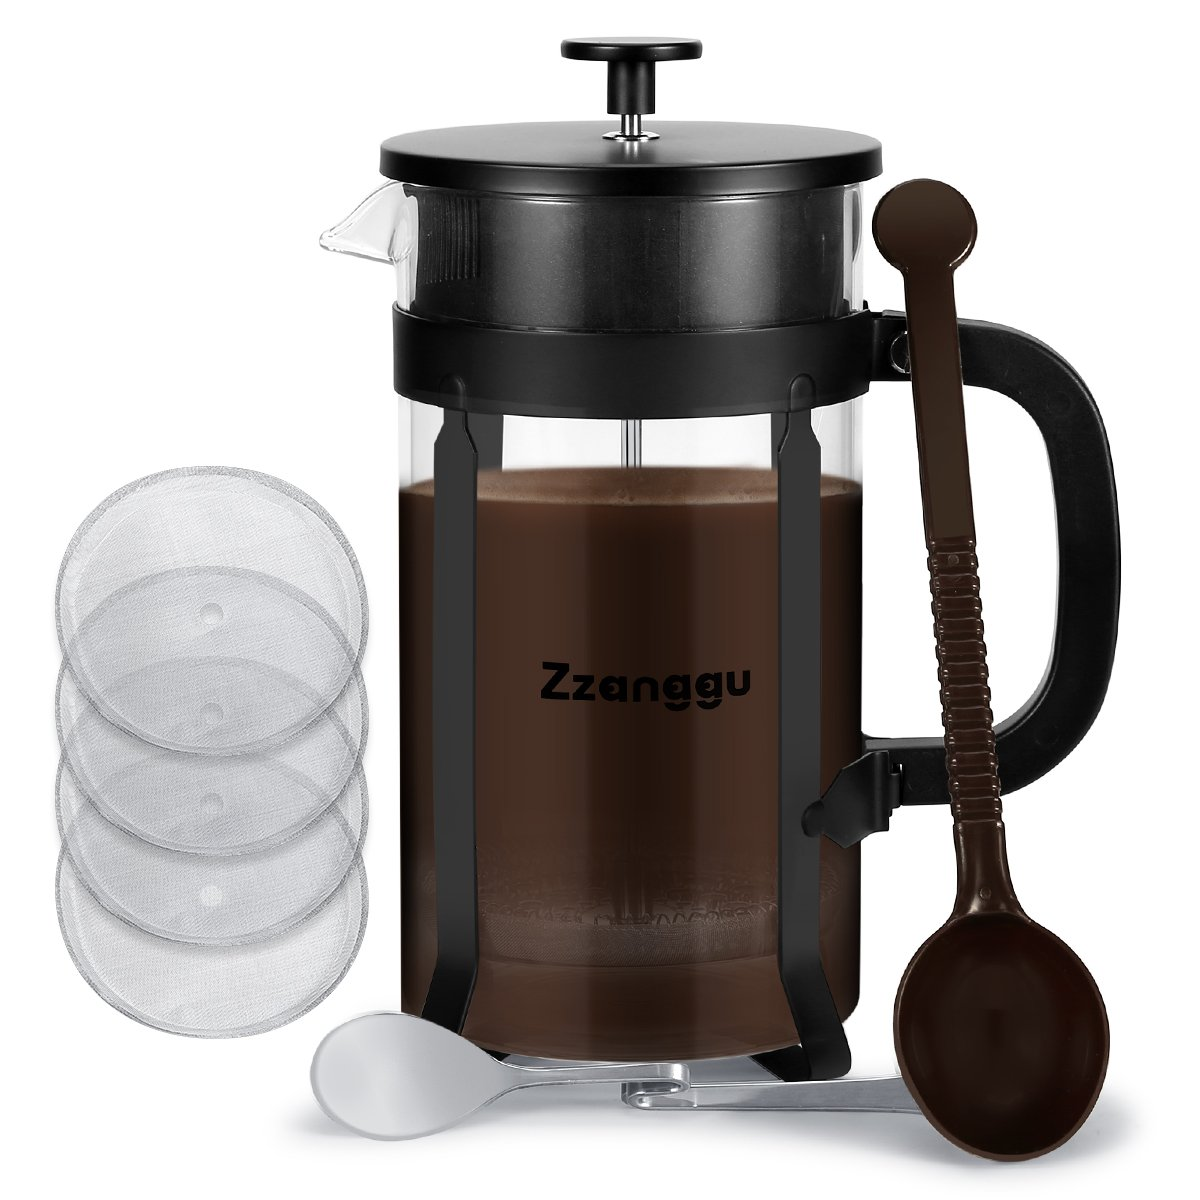 Zzanggu Coffee Maker Bundle French Press(8 Cup, 34 Oz, 1 Liter) Heat-resistant Glass Coffee Pot with 304 Stainless Steel, Double Filter Screen for Brewing Coffee/Tea (Black)